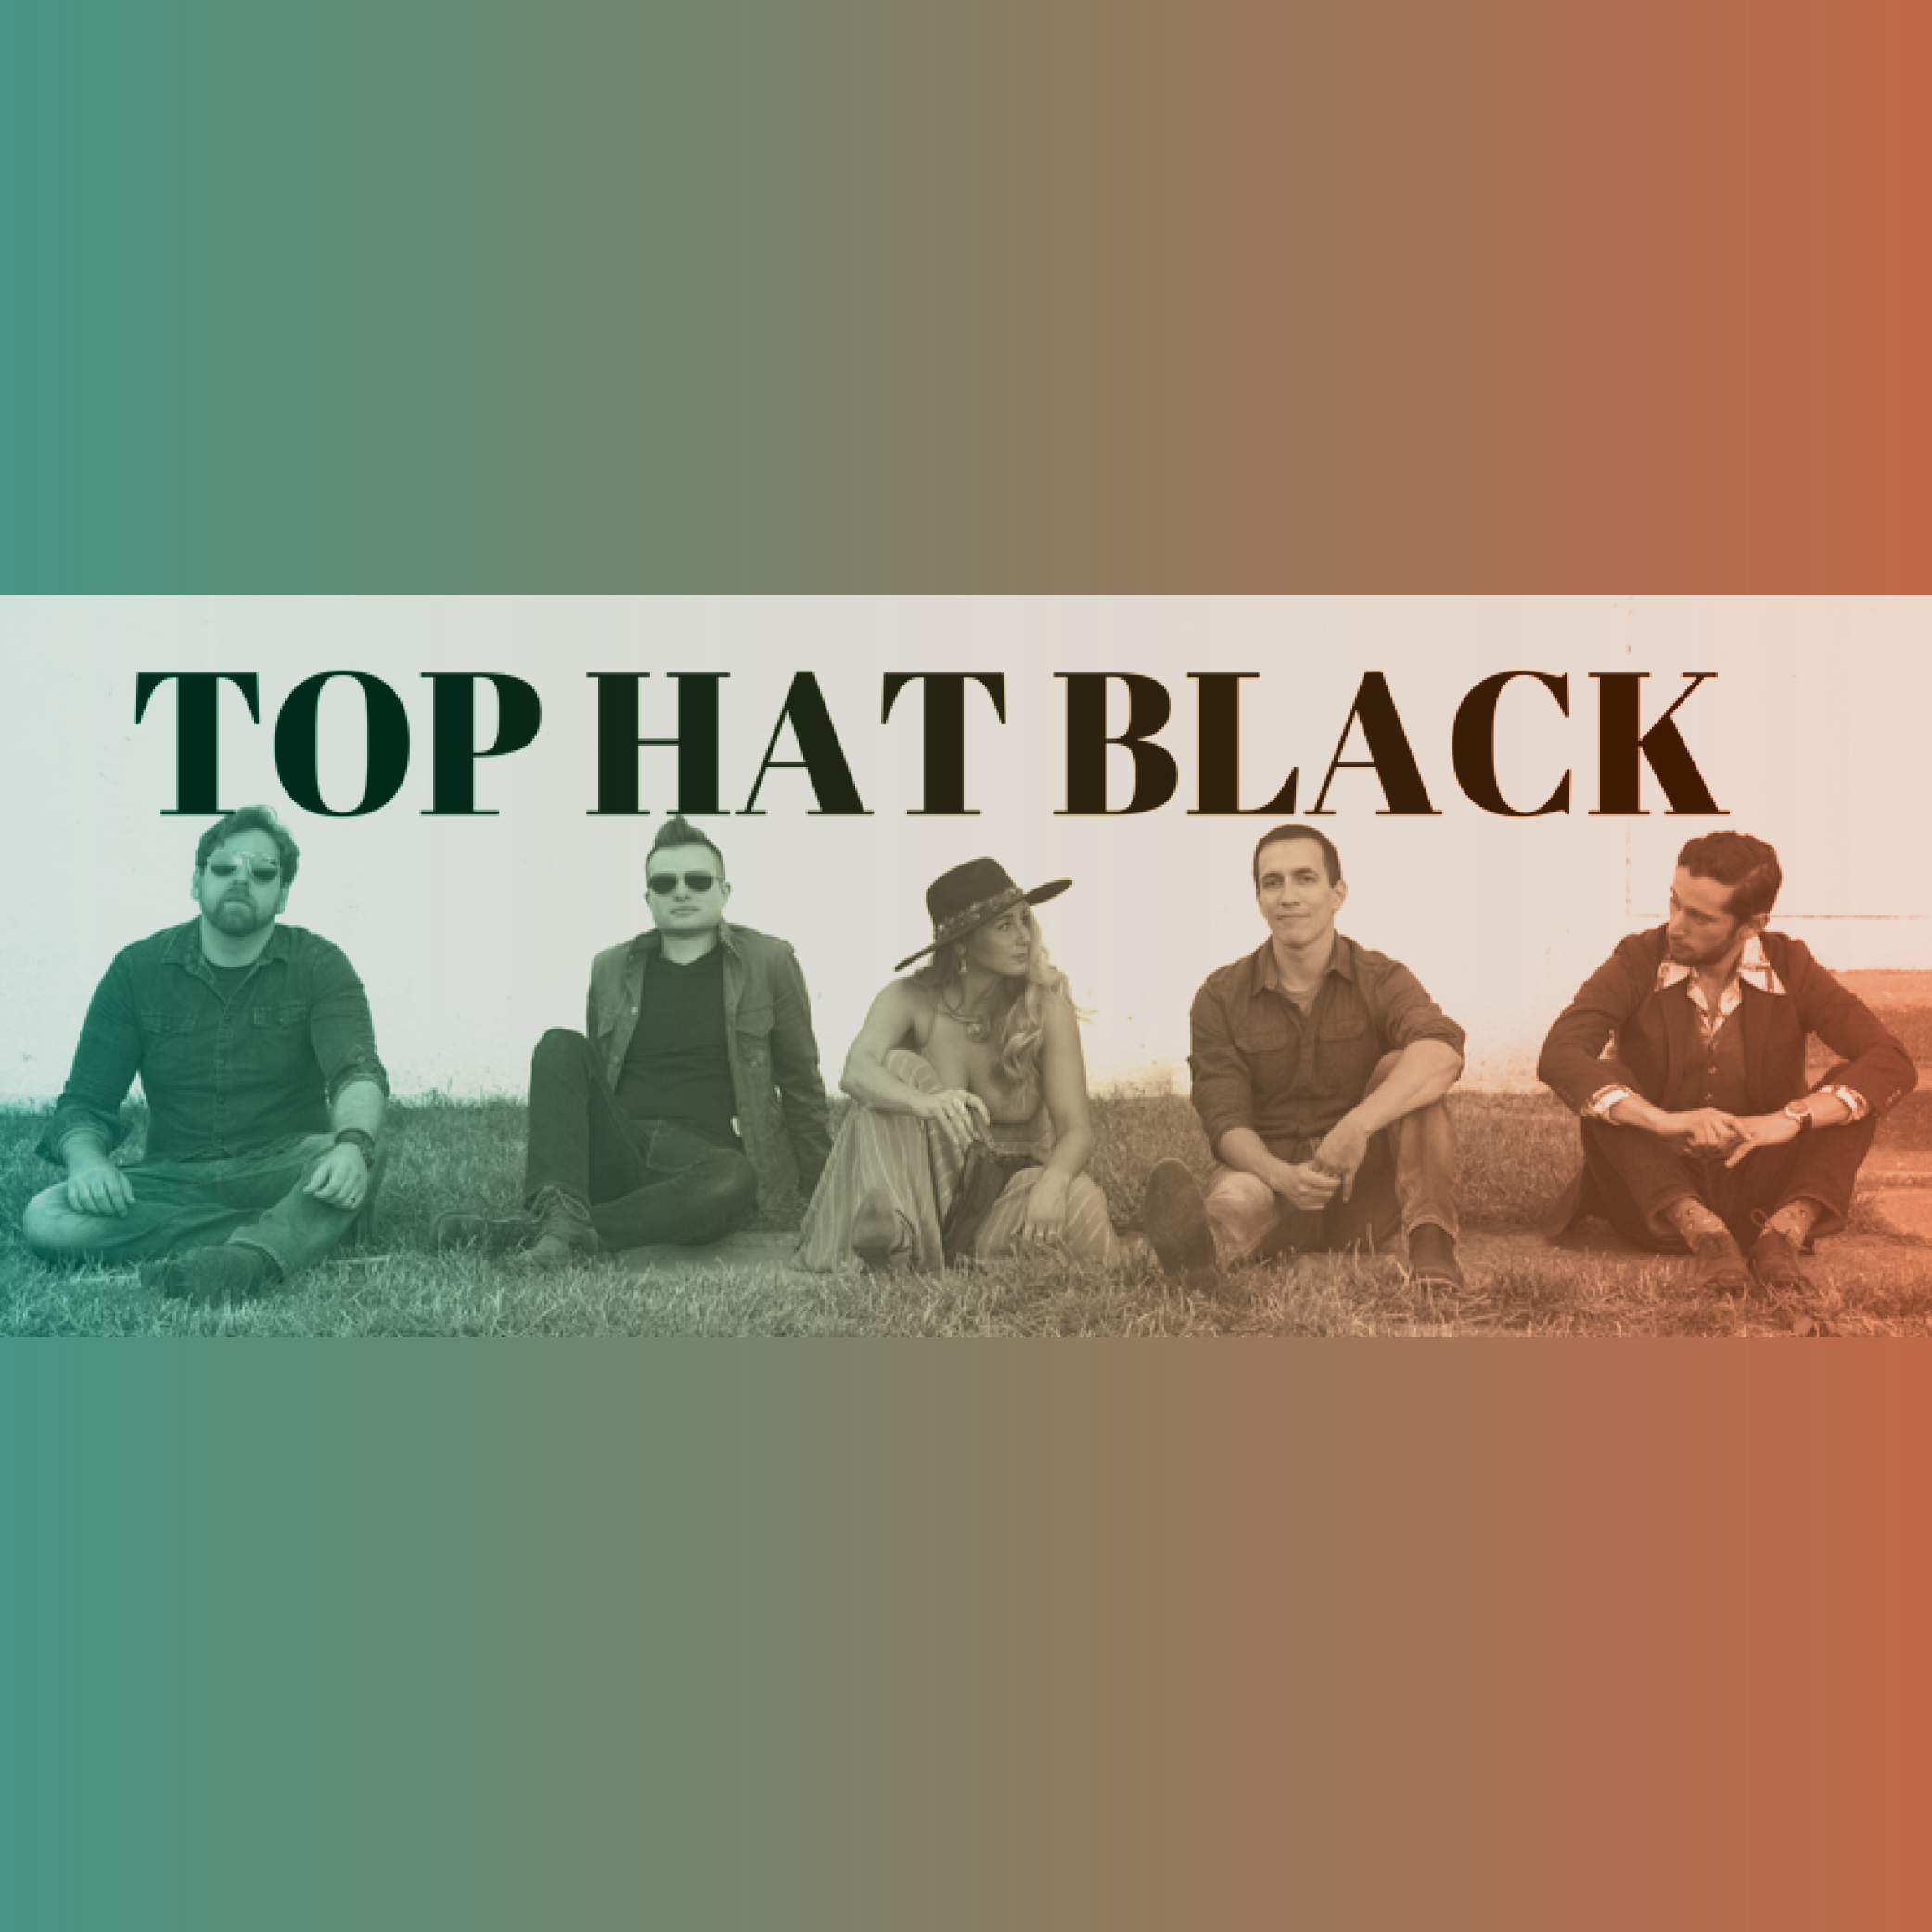 Top Hat Black  |  Saturday, September 14  |  8:00-9:00 p.m.  |  Rudy's Pub